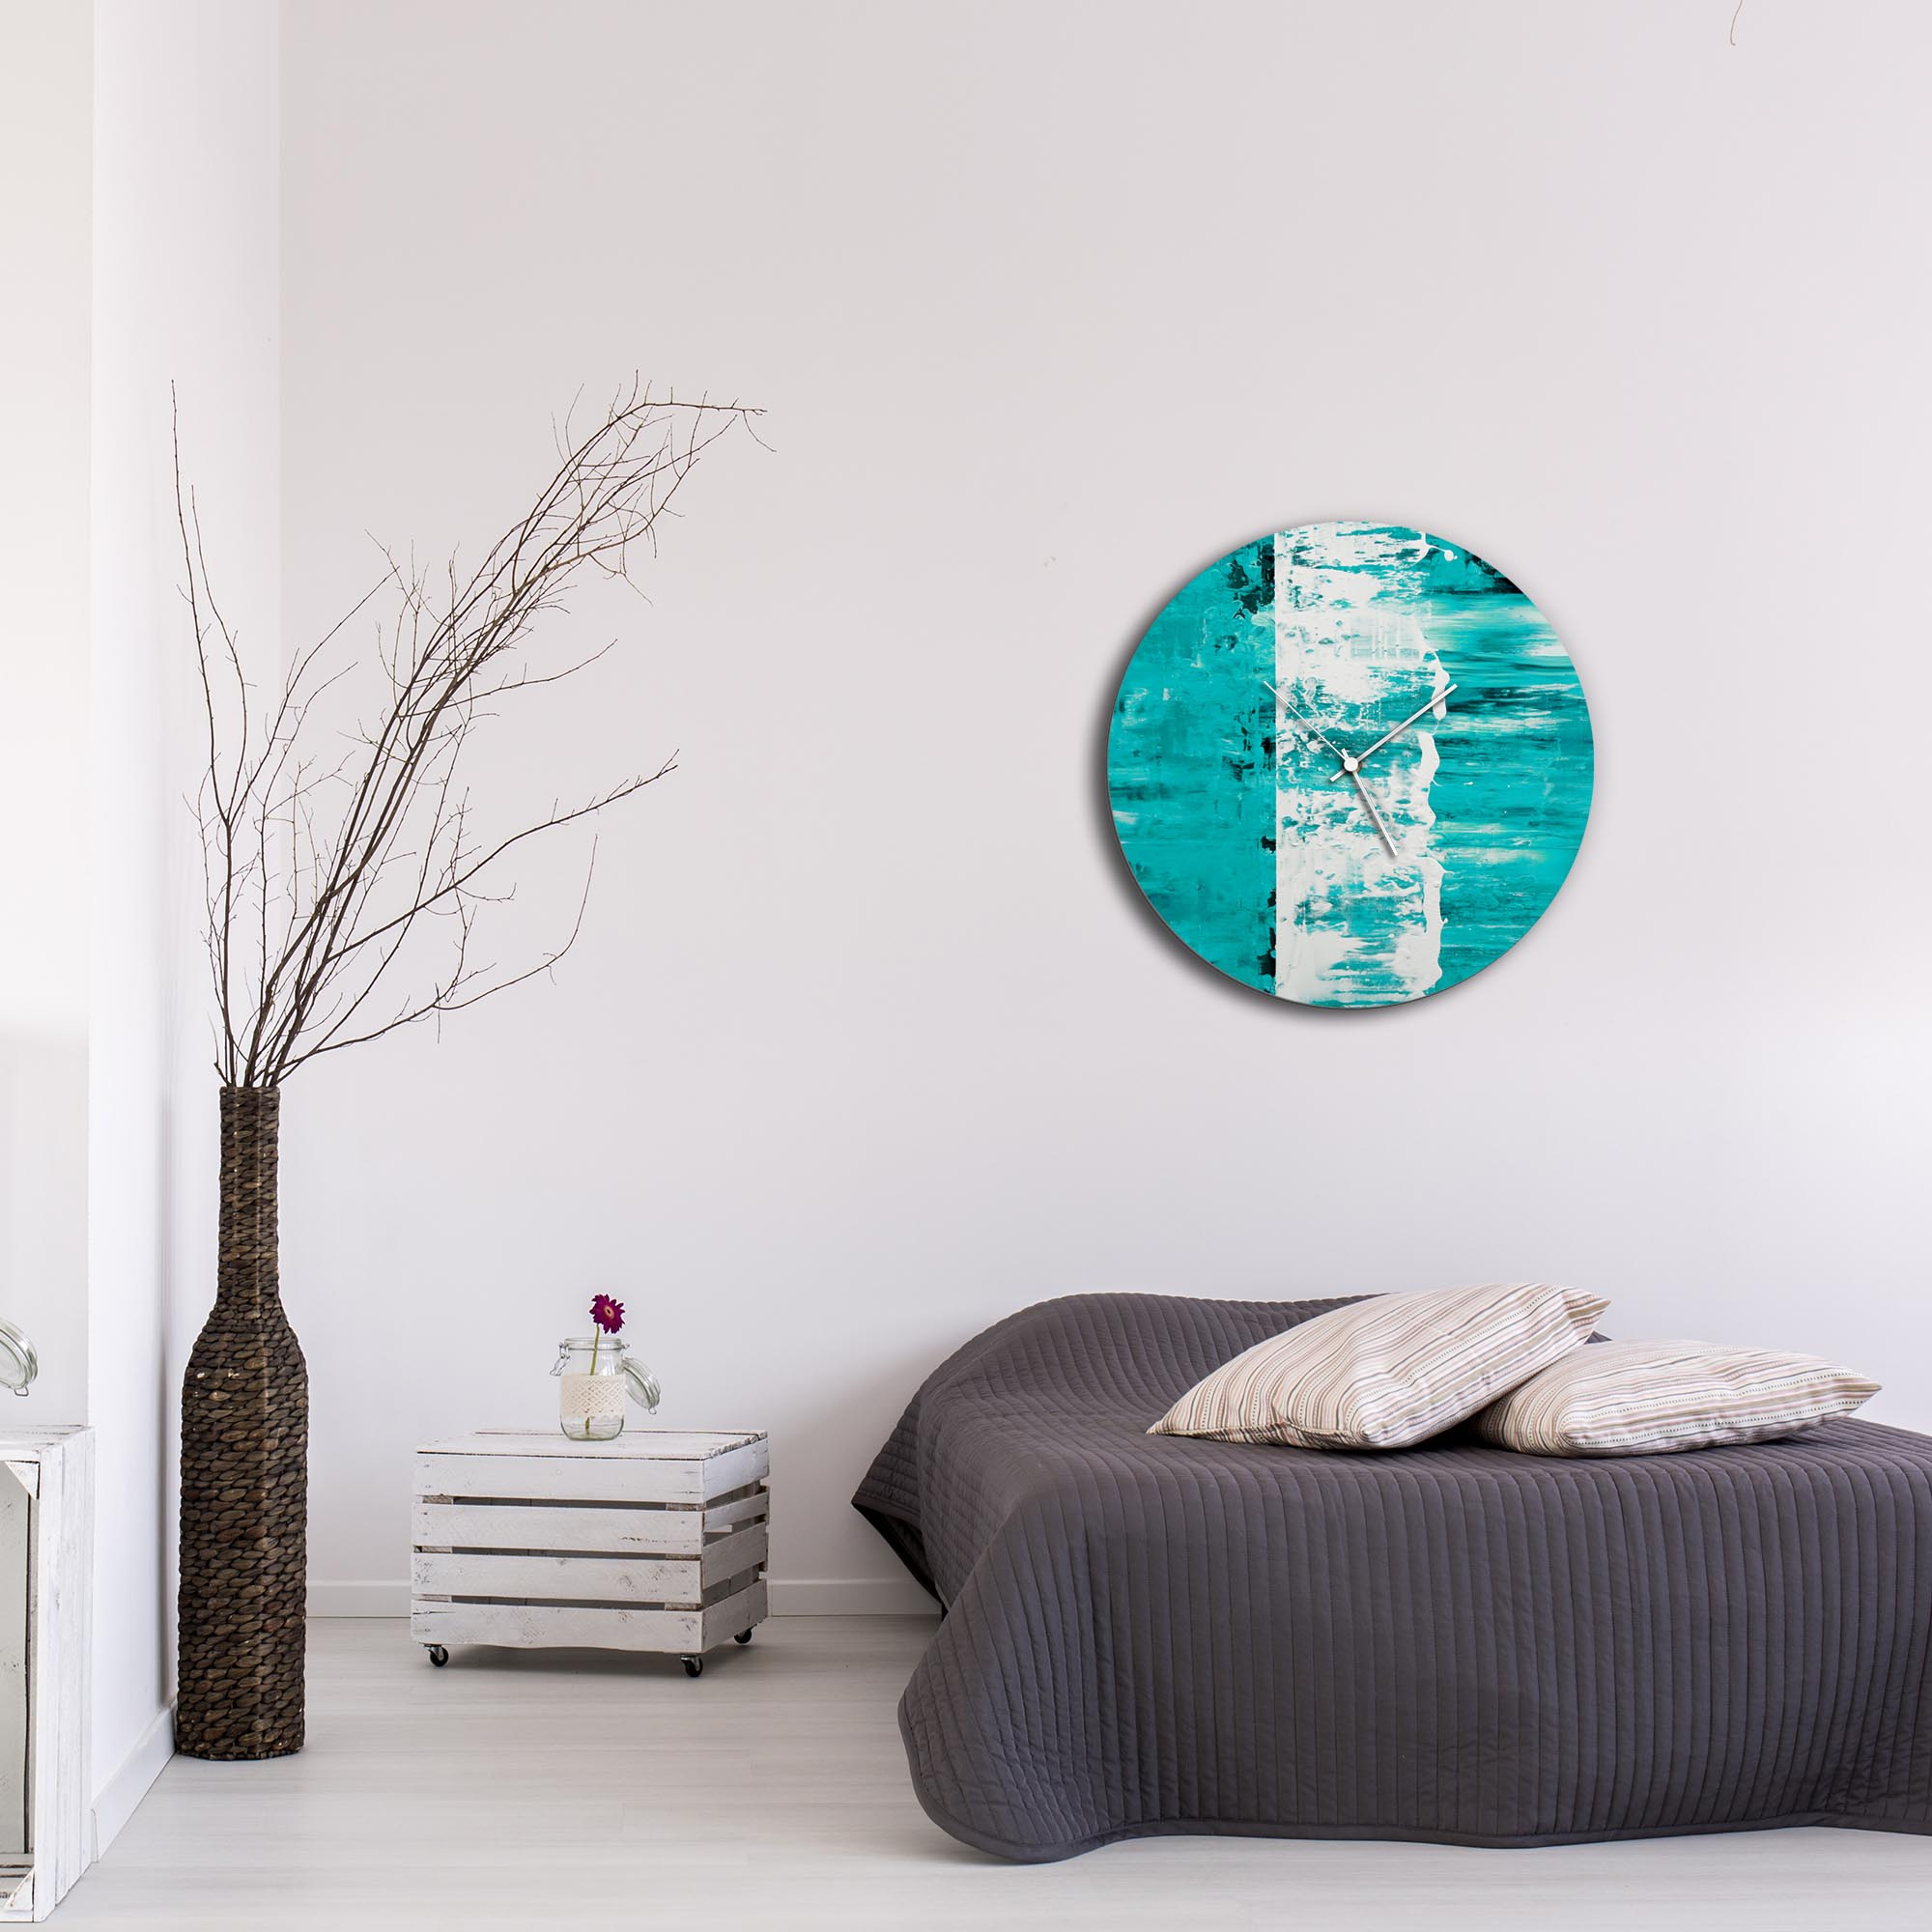 Teal Street Circle Clock Large by Mendo Vasilevski - Urban Abstract Home Decor - Lifestyle View